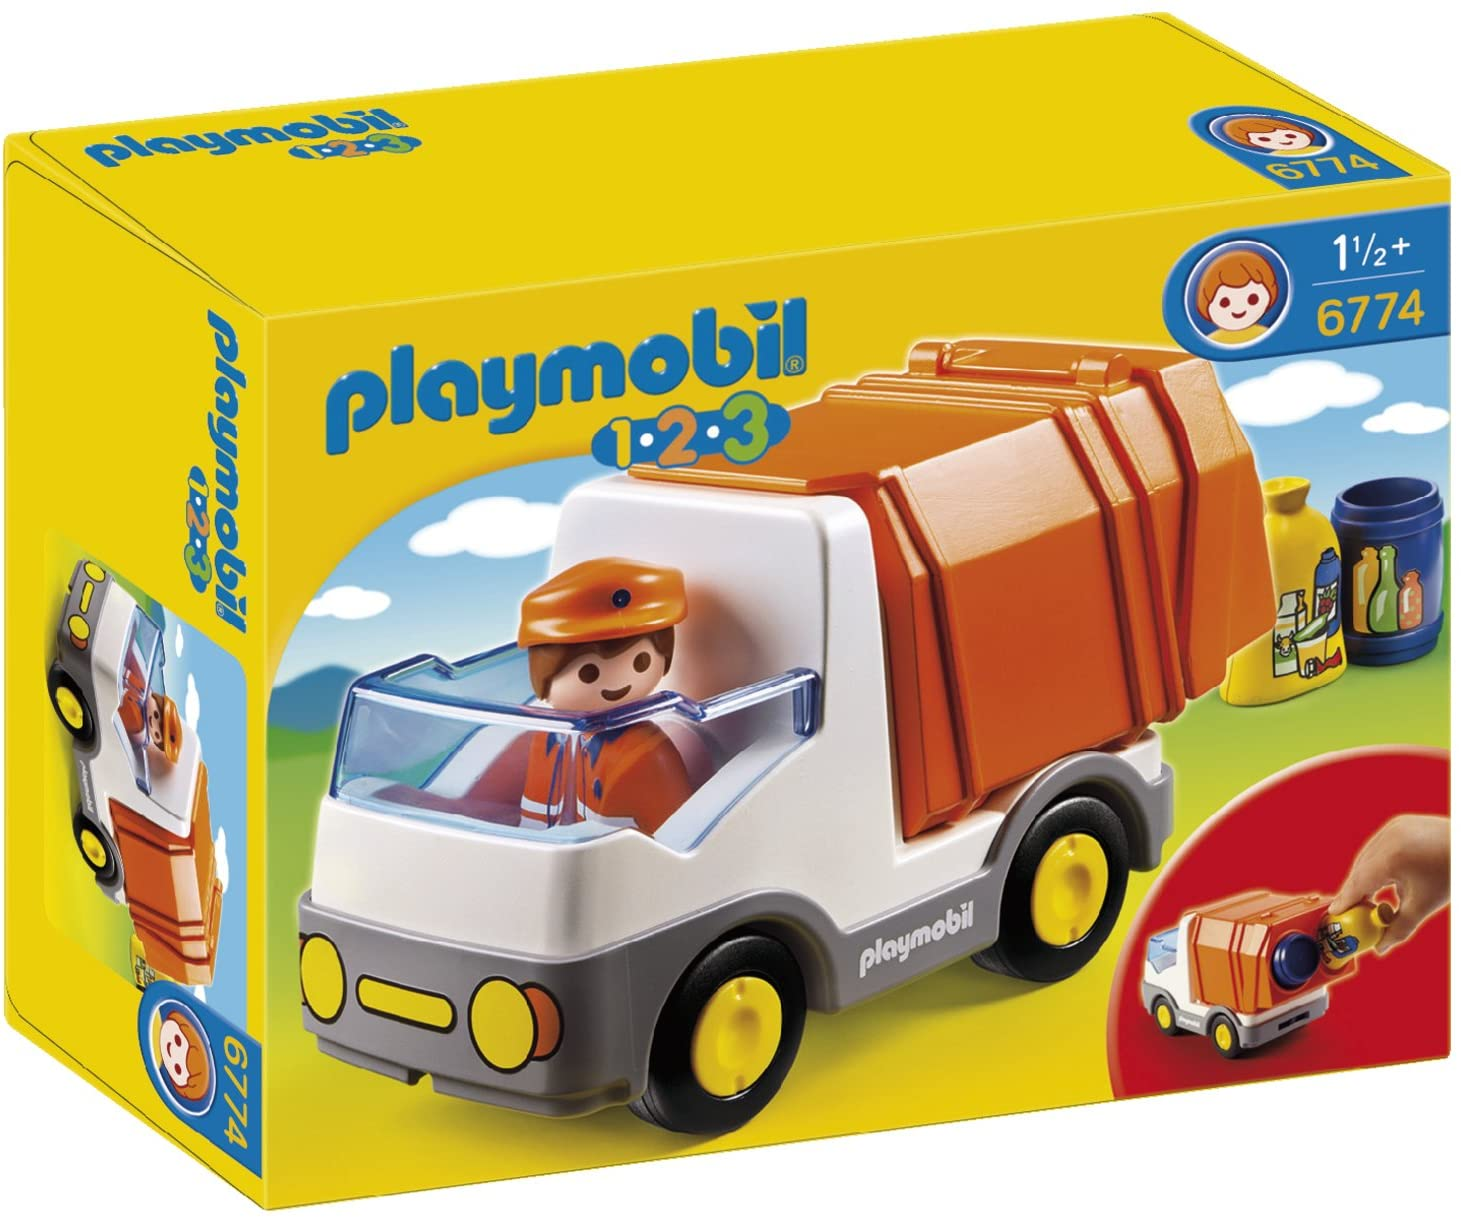 PLAYMOBIL 1.2.3 Recycling Truck, Standard Packaging